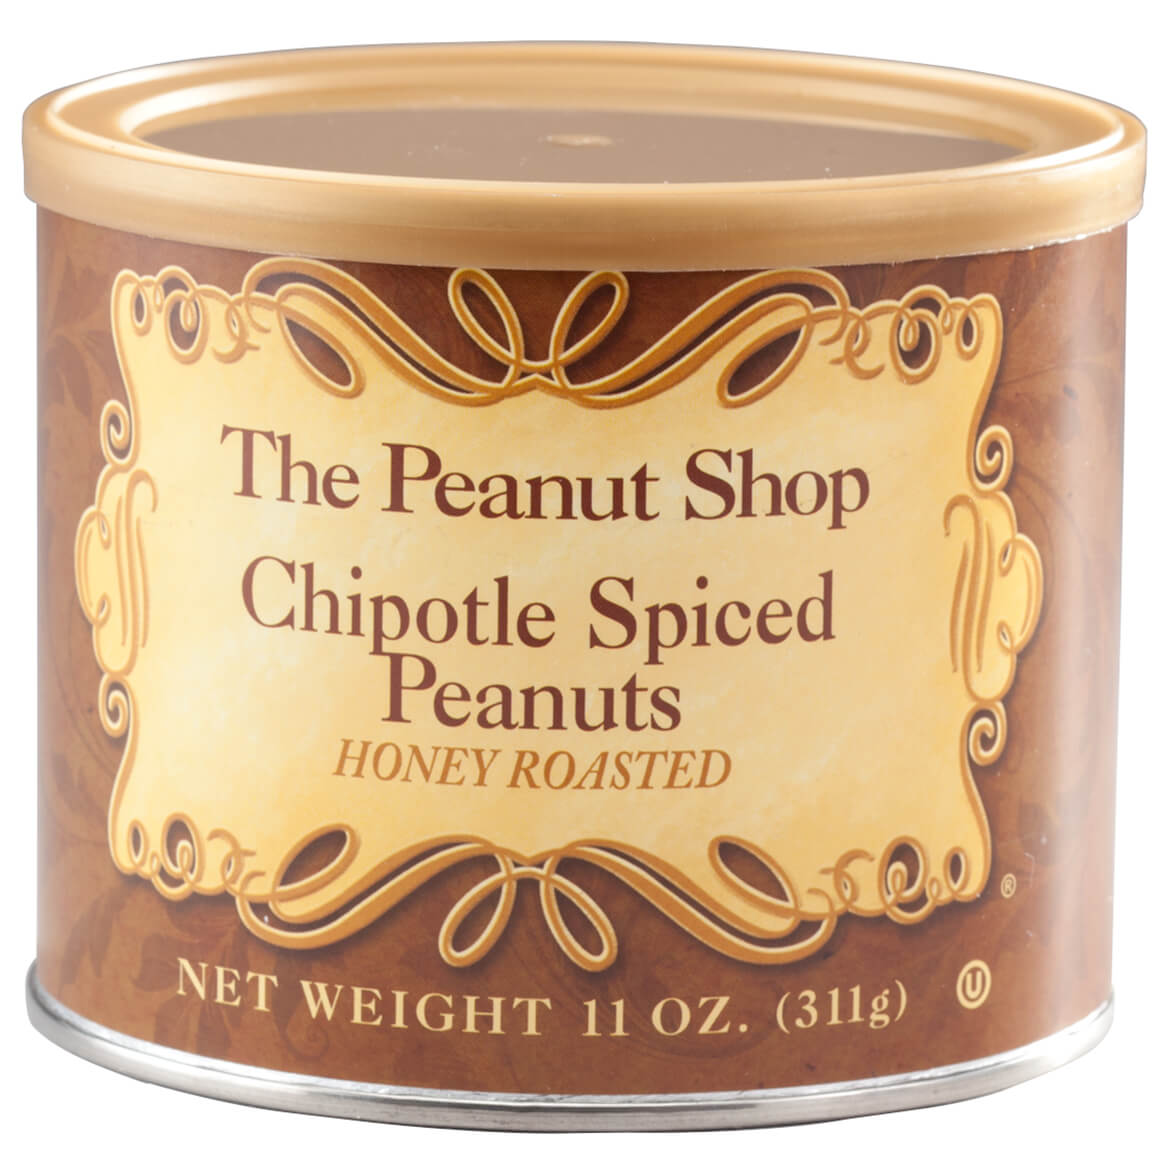 The Peanut Shop® Honey Roasted Chipotle Spiced Peanuts, 11oz